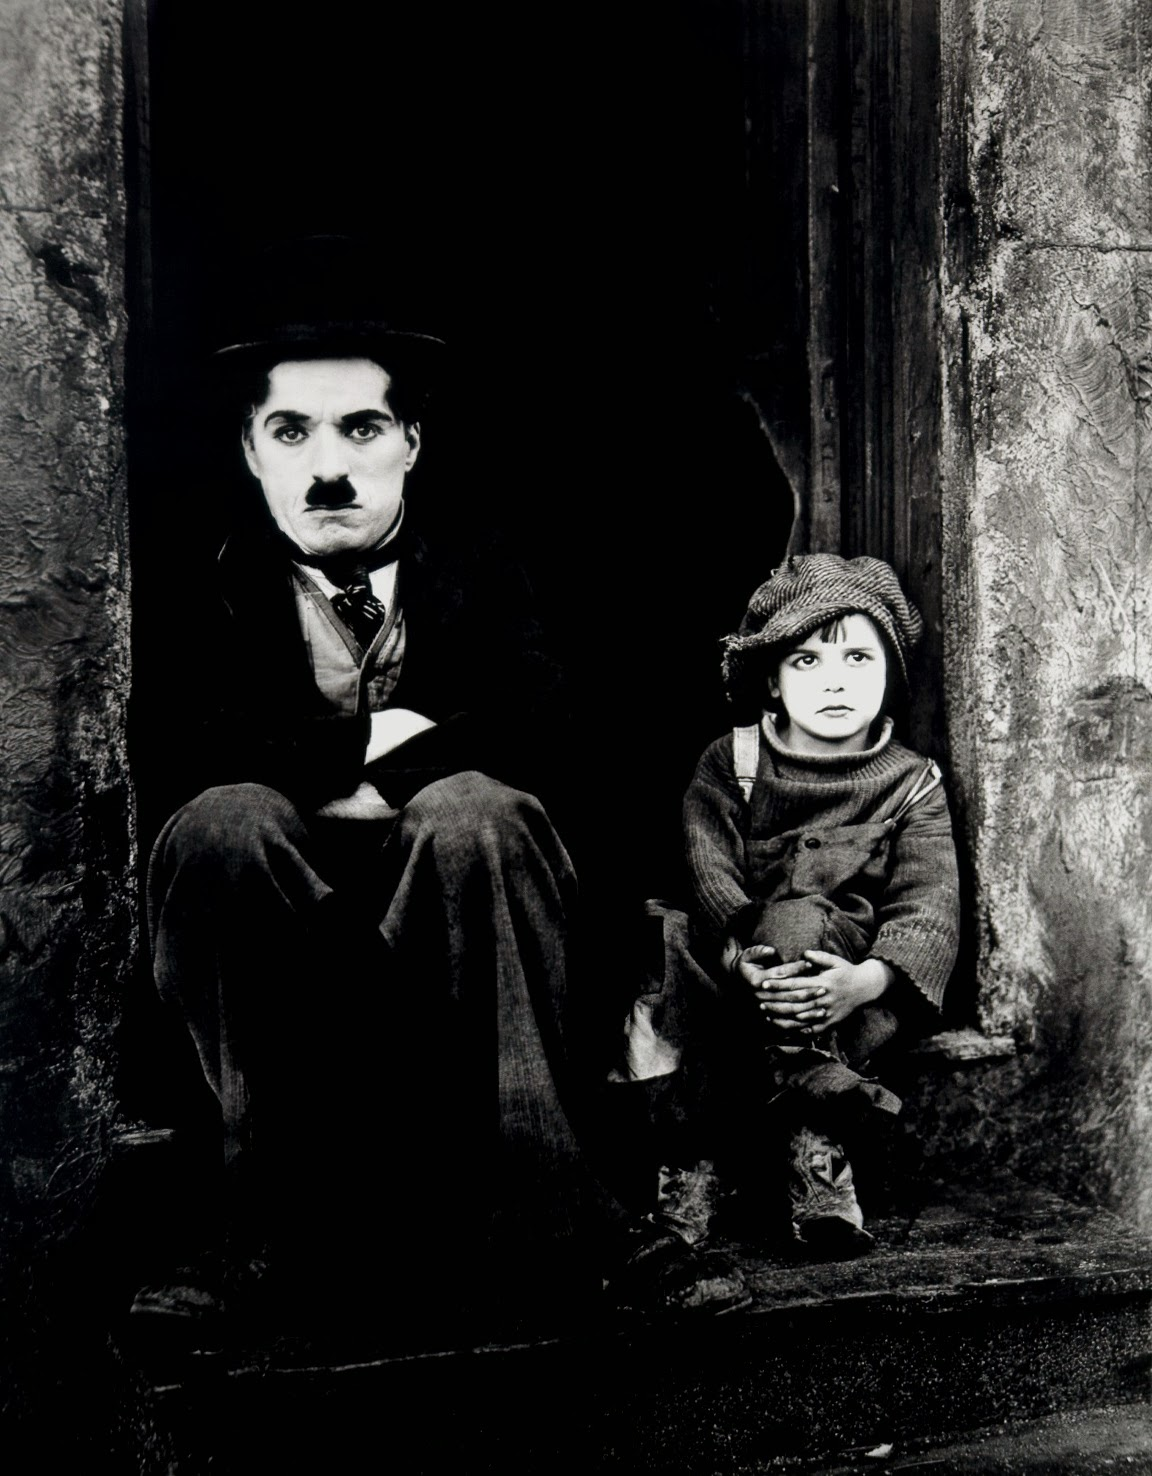 chaplin,the kid, funny movie